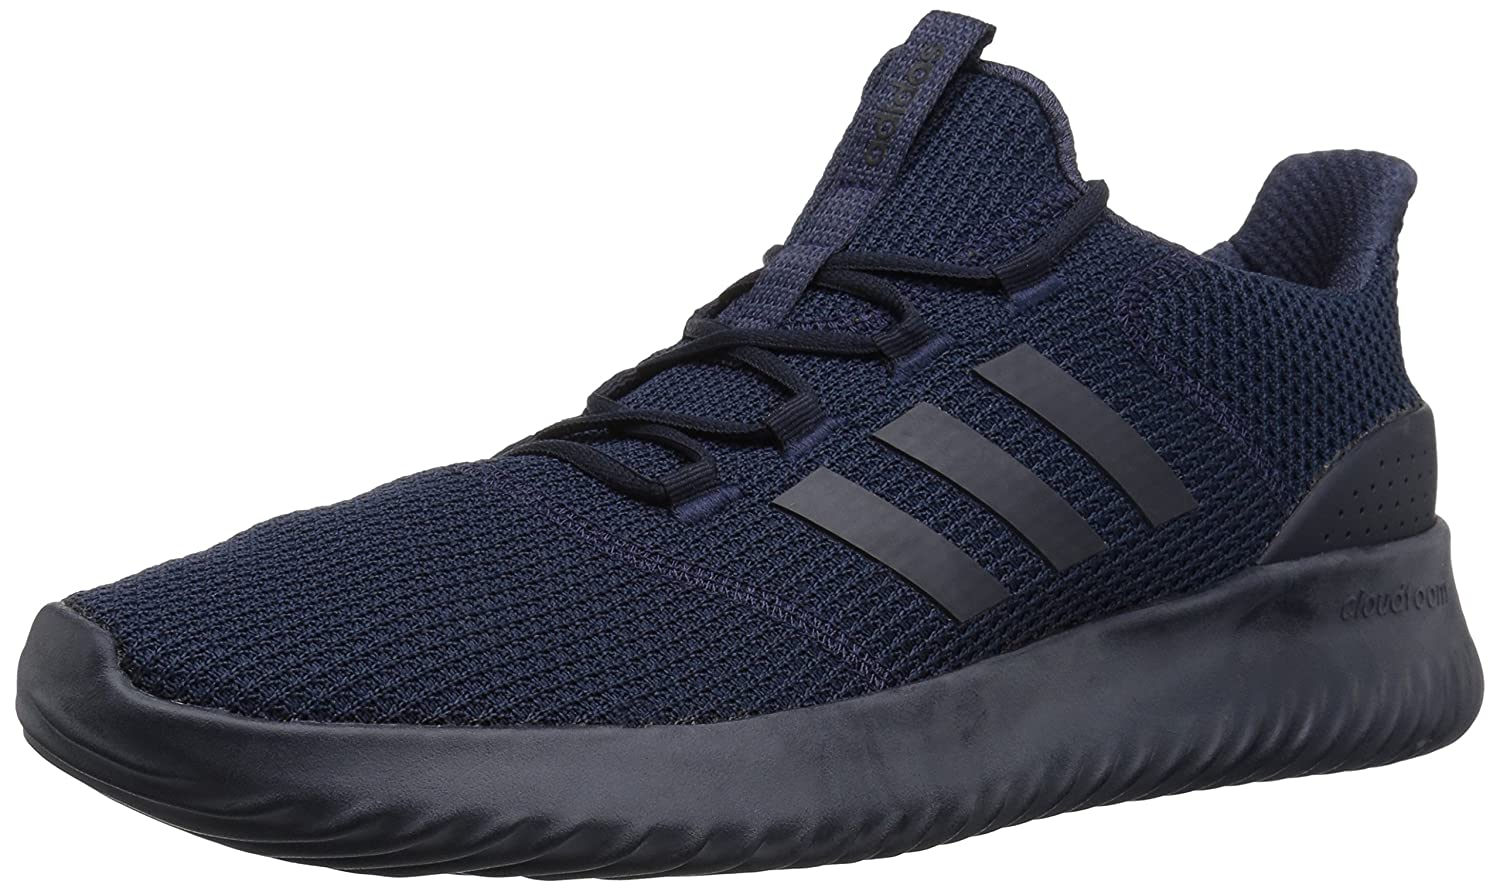 messieurs march et mesdames adidas neo hommes march messieurs d870ab